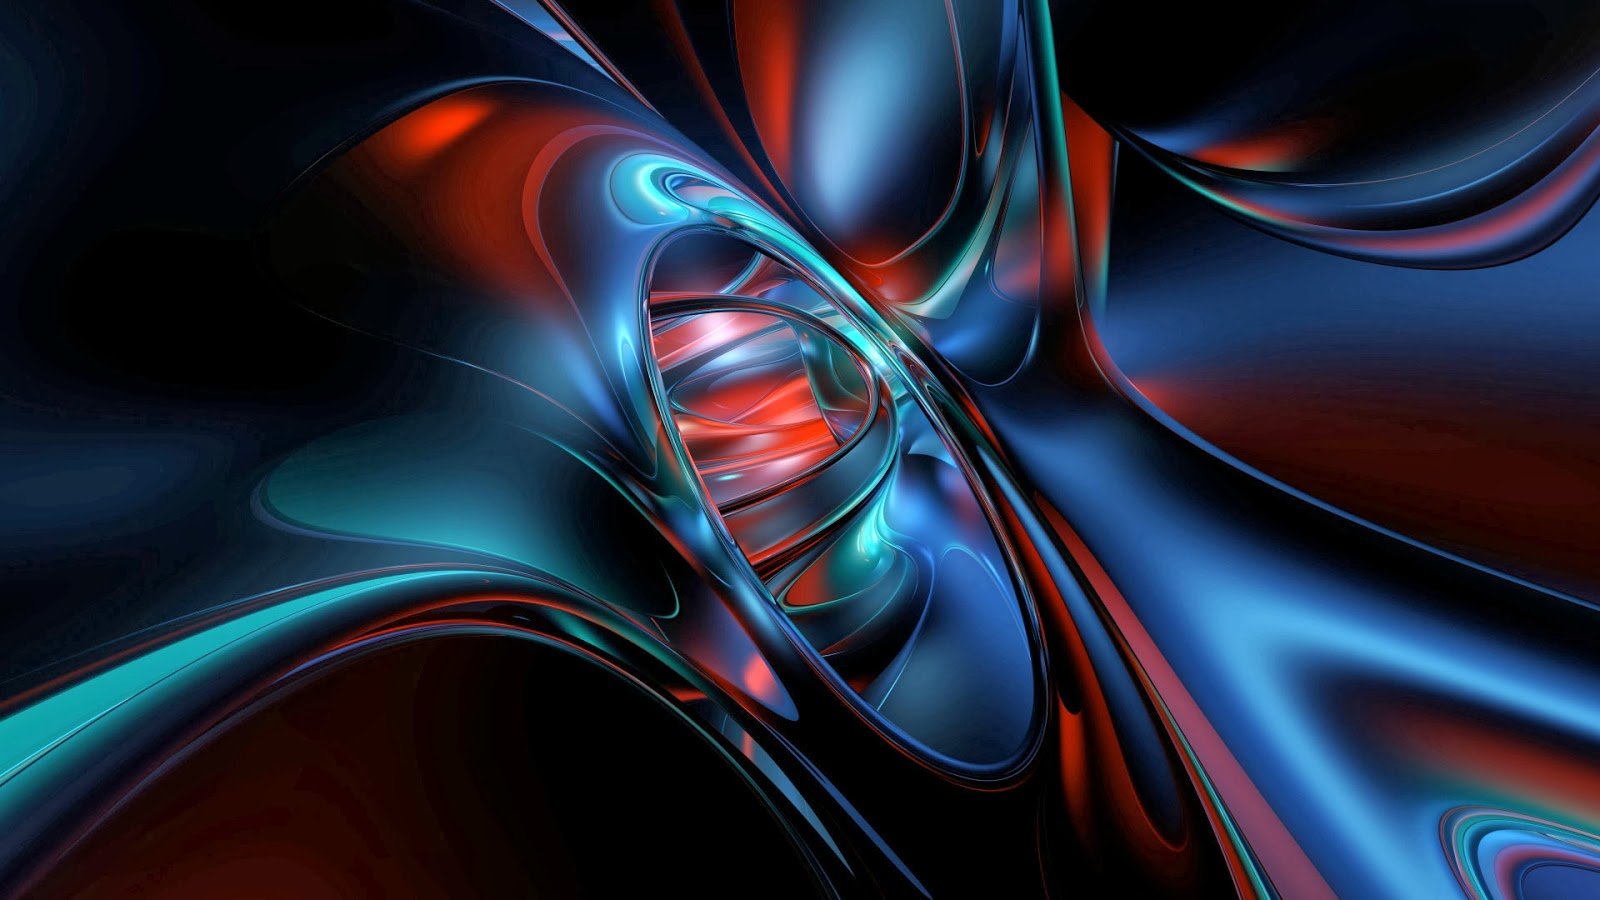 3d cool background wallpapers